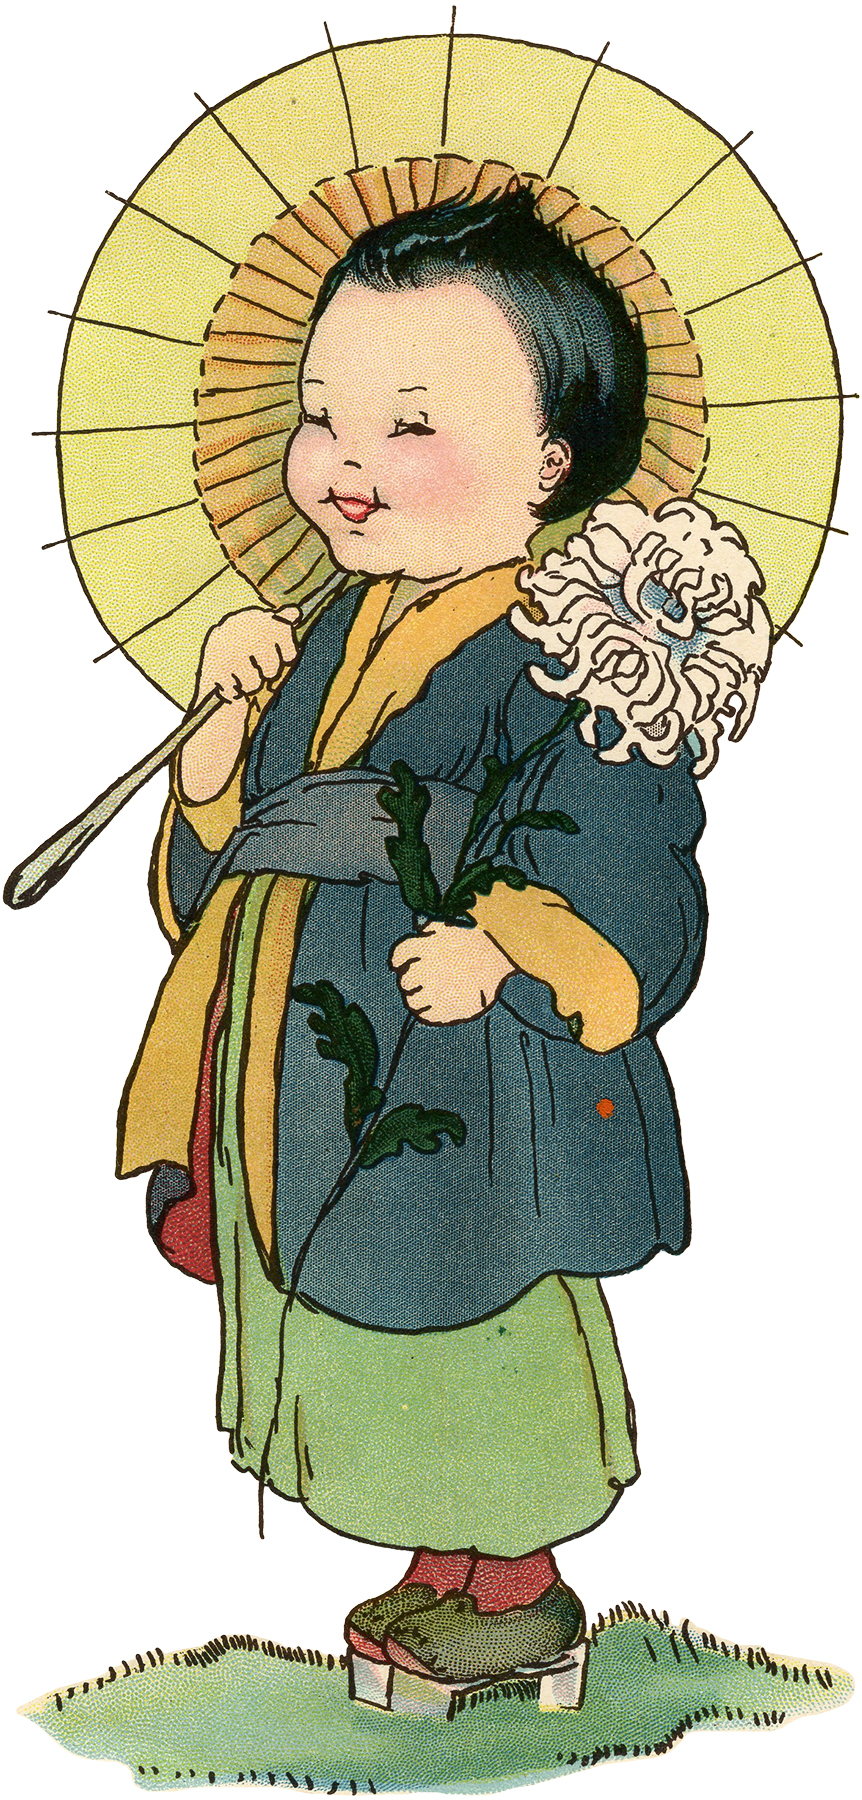 Vintage Asian Girl with Parasol Graphic